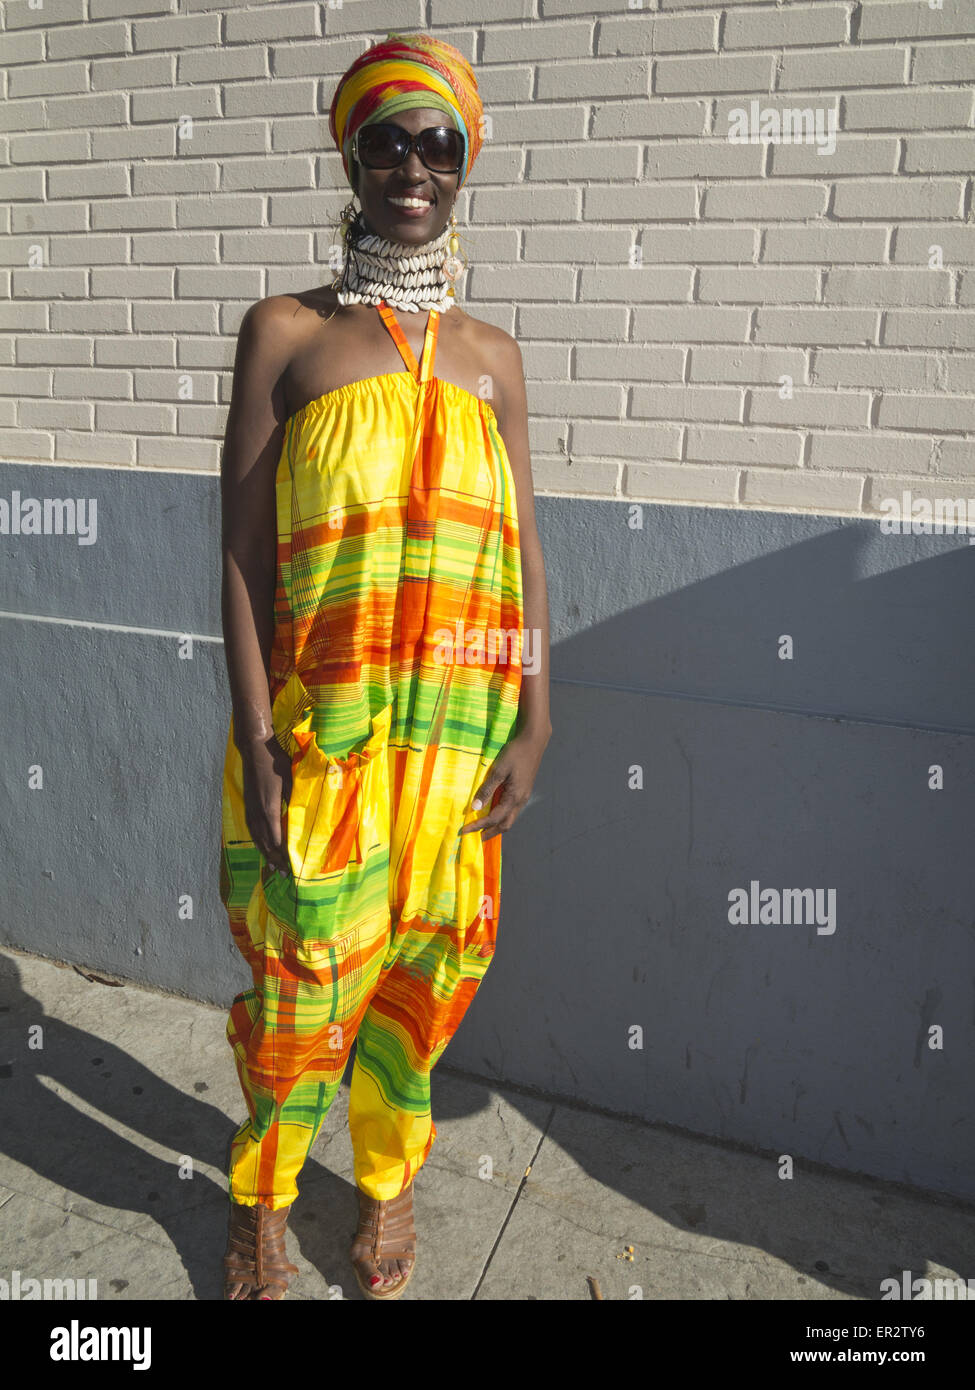 Chic Woman Wearing African Inspired Clothing And Jewelry At The Dance Stock Photo Alamy